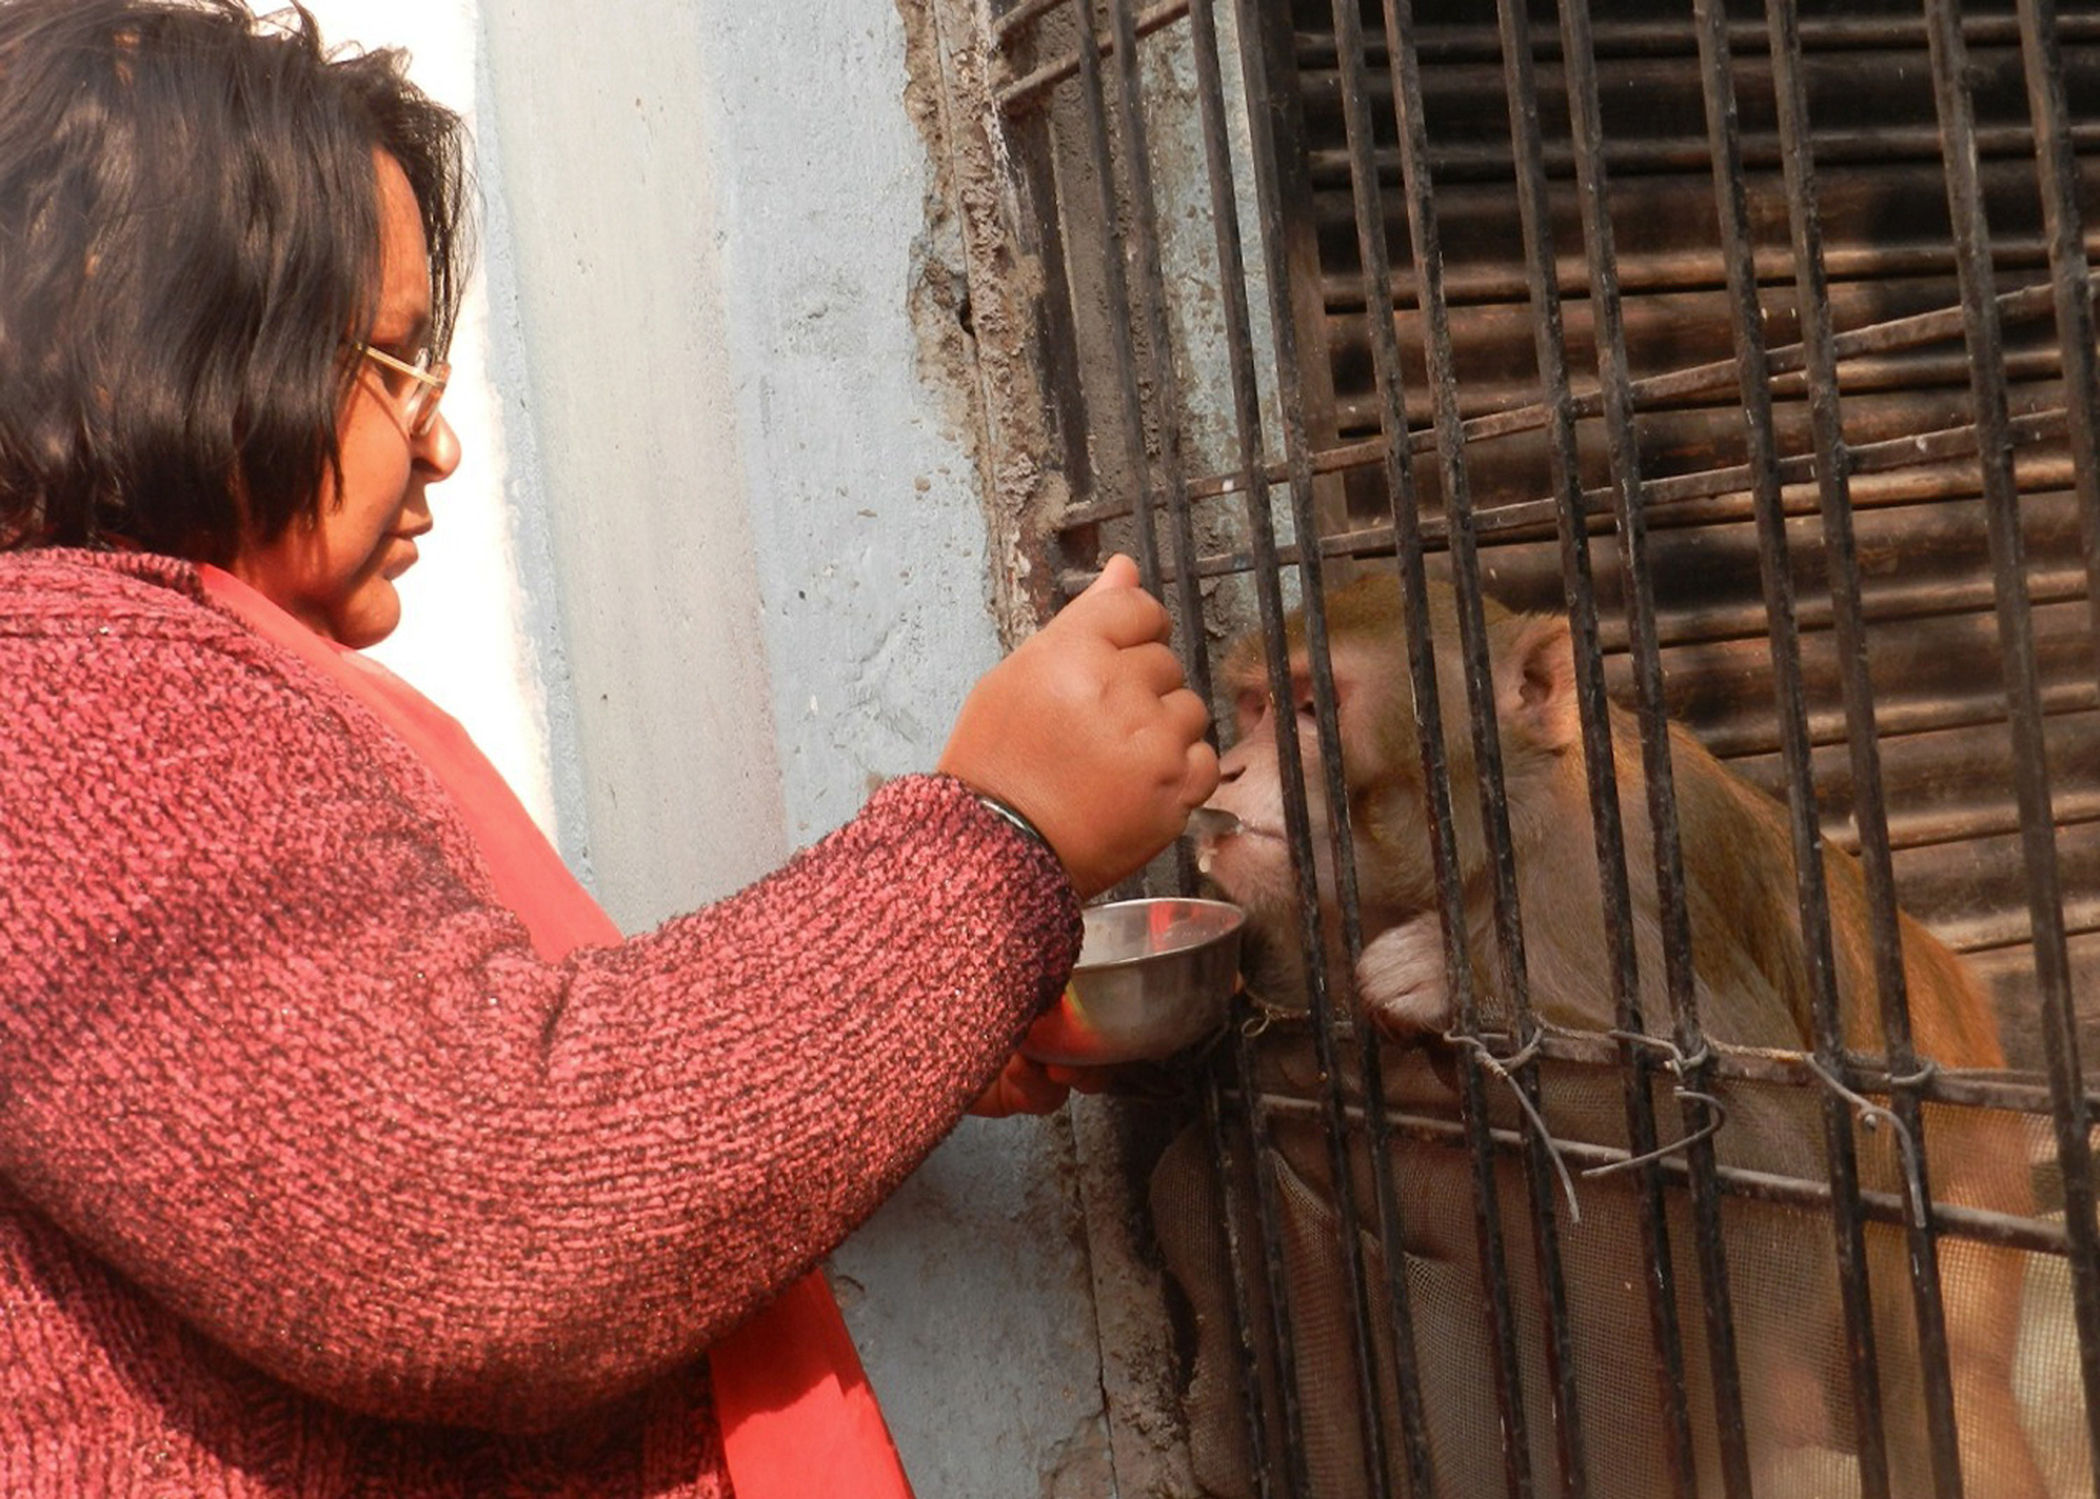 Wife of Brajesh Srivastava, Shabista, feeds their pet monkey Chunmun at their home in Raebareli in northern Uttar Pradesh state, February 16, 2015.